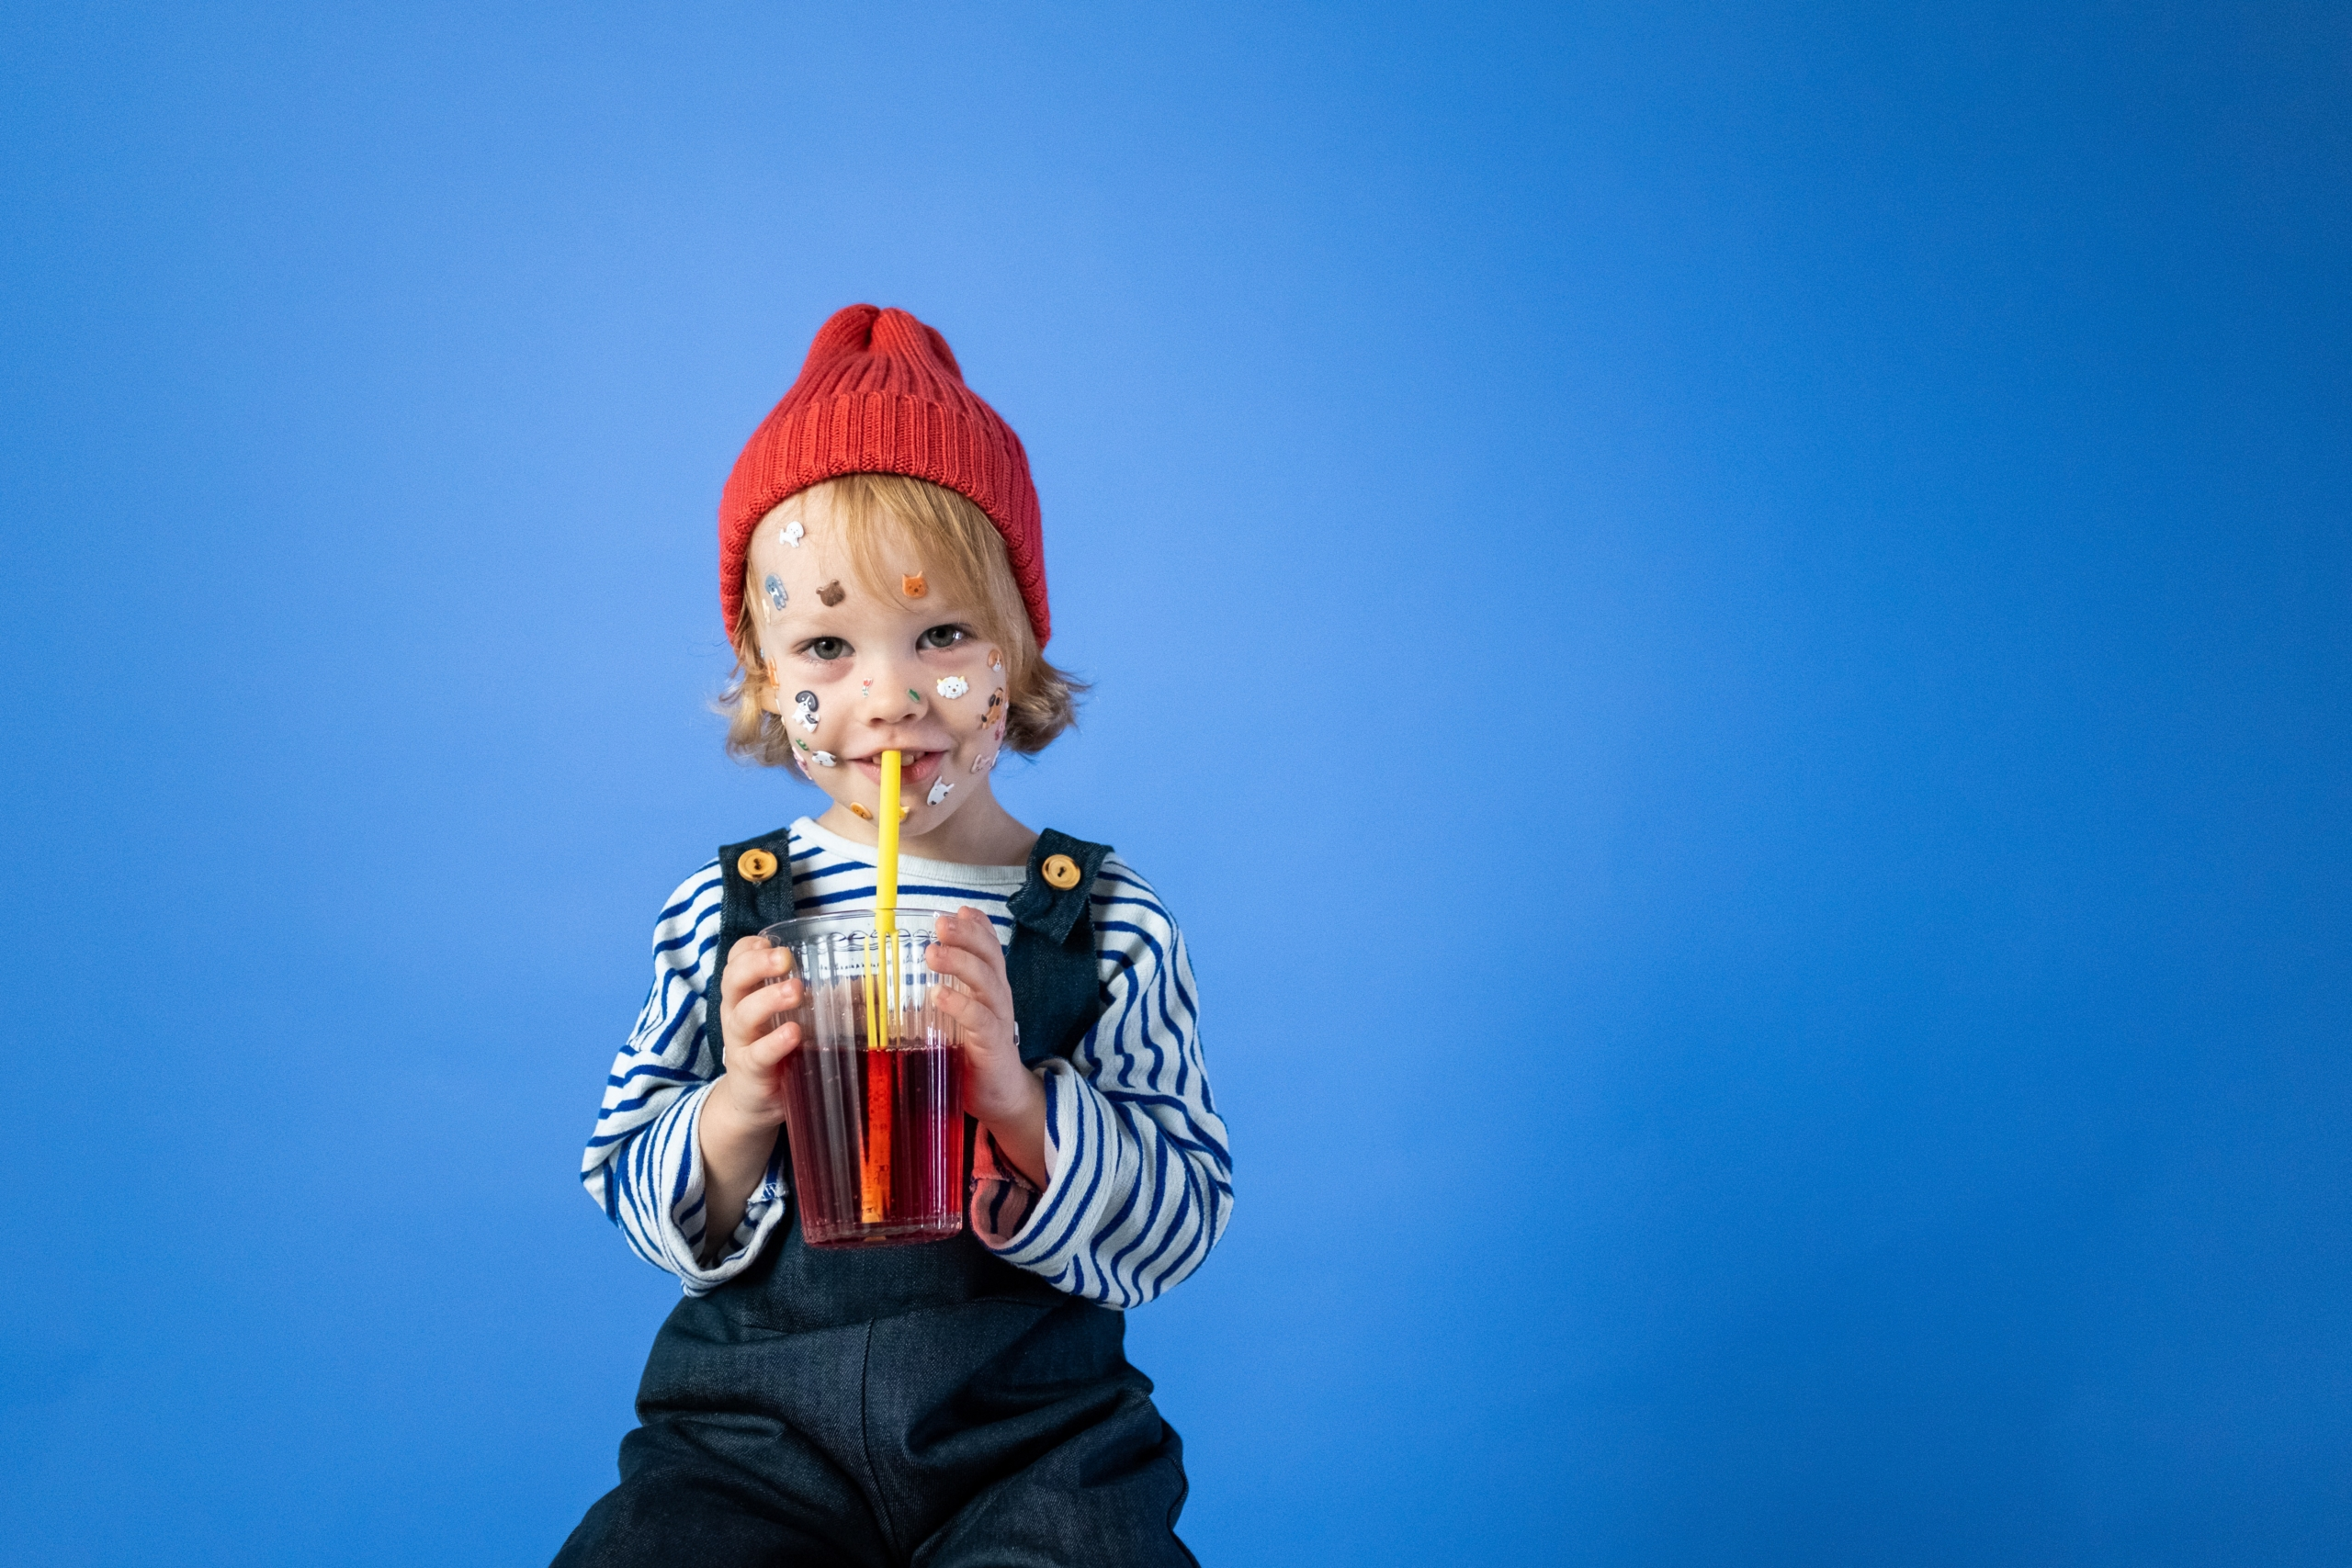 Child Drinking From Cup